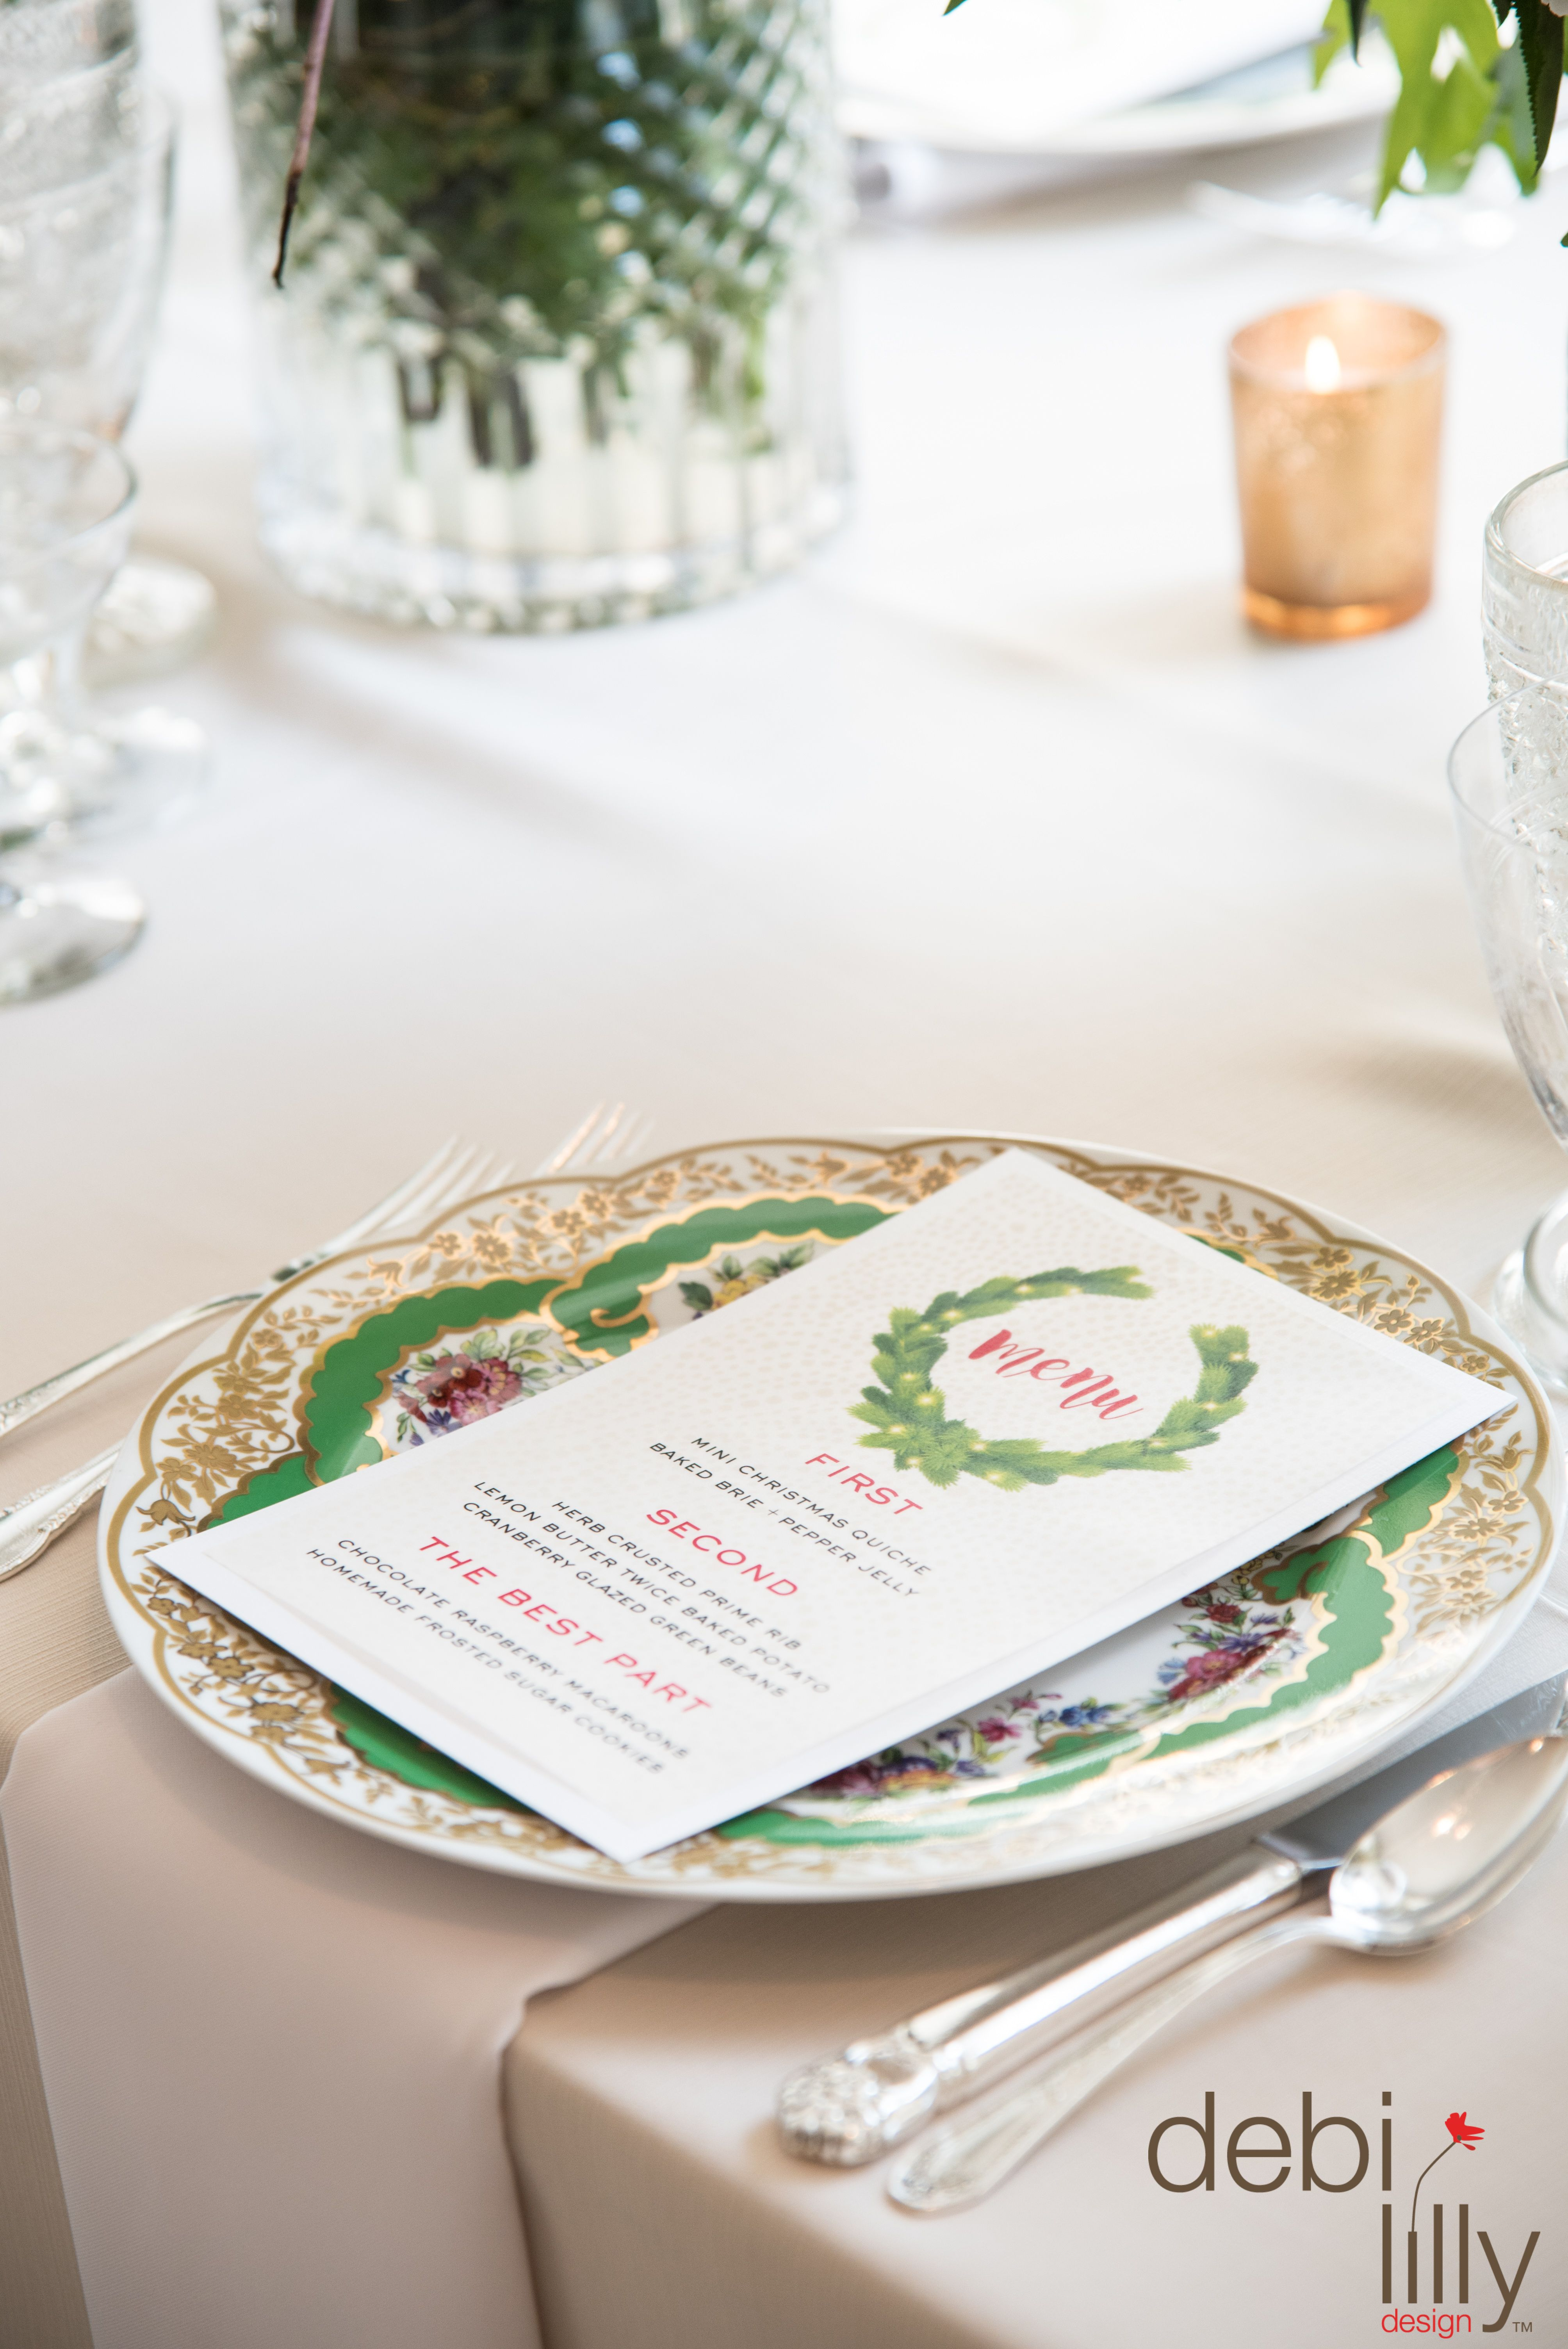 What\'s on your holiday menu? Use this adorable debi lilly design ...